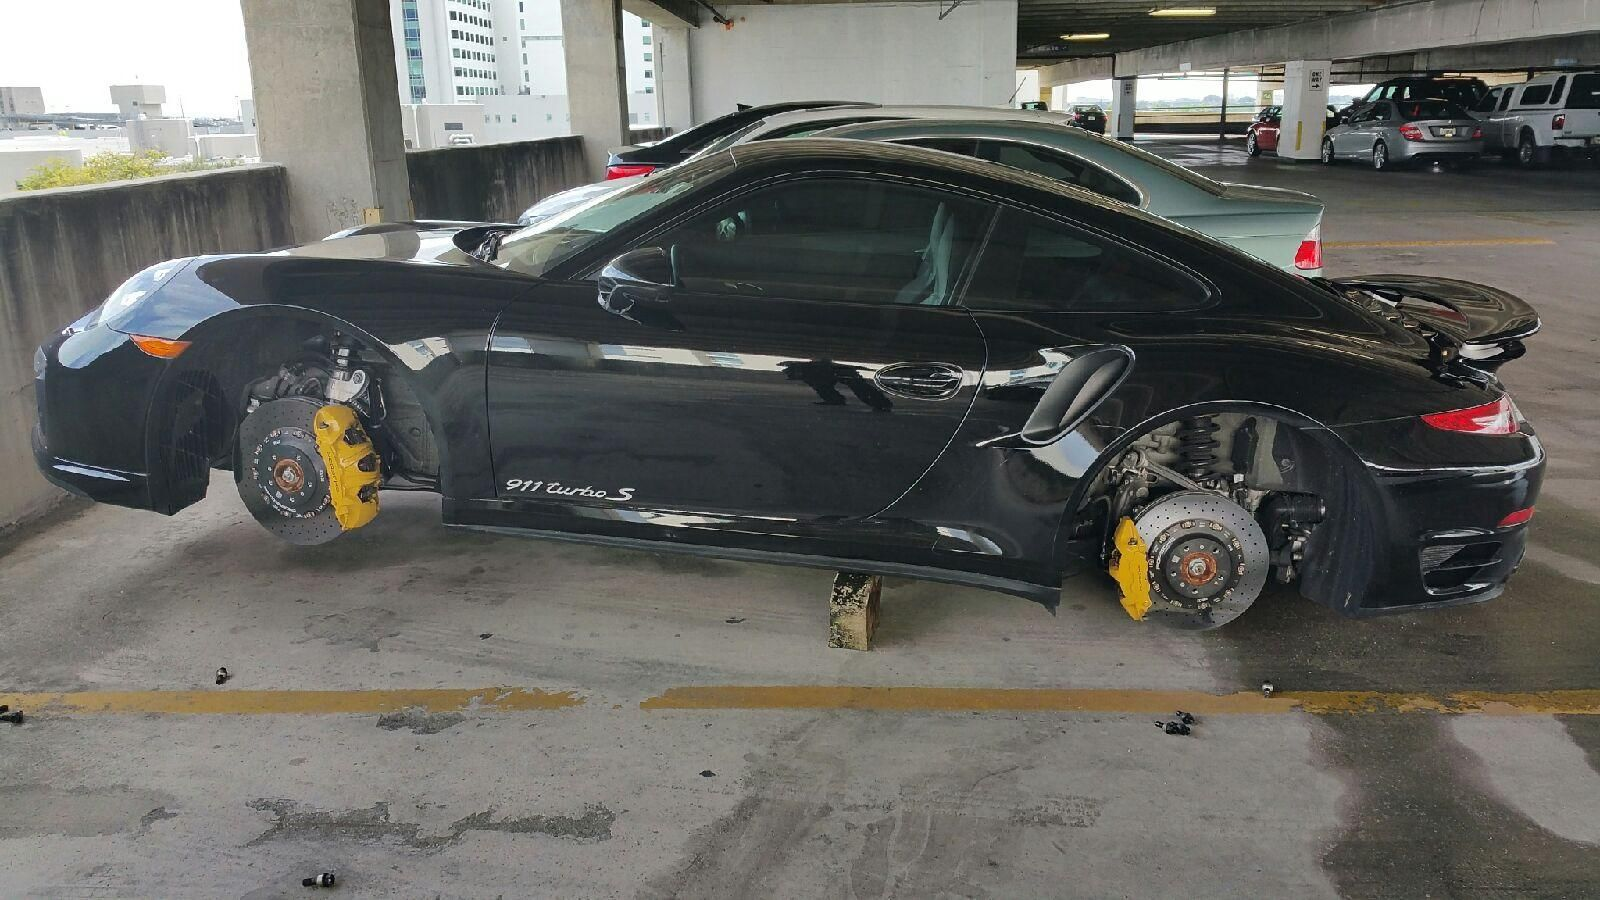 Porsche 911 Turbo S Wheels Stolen In Florida Hospital S